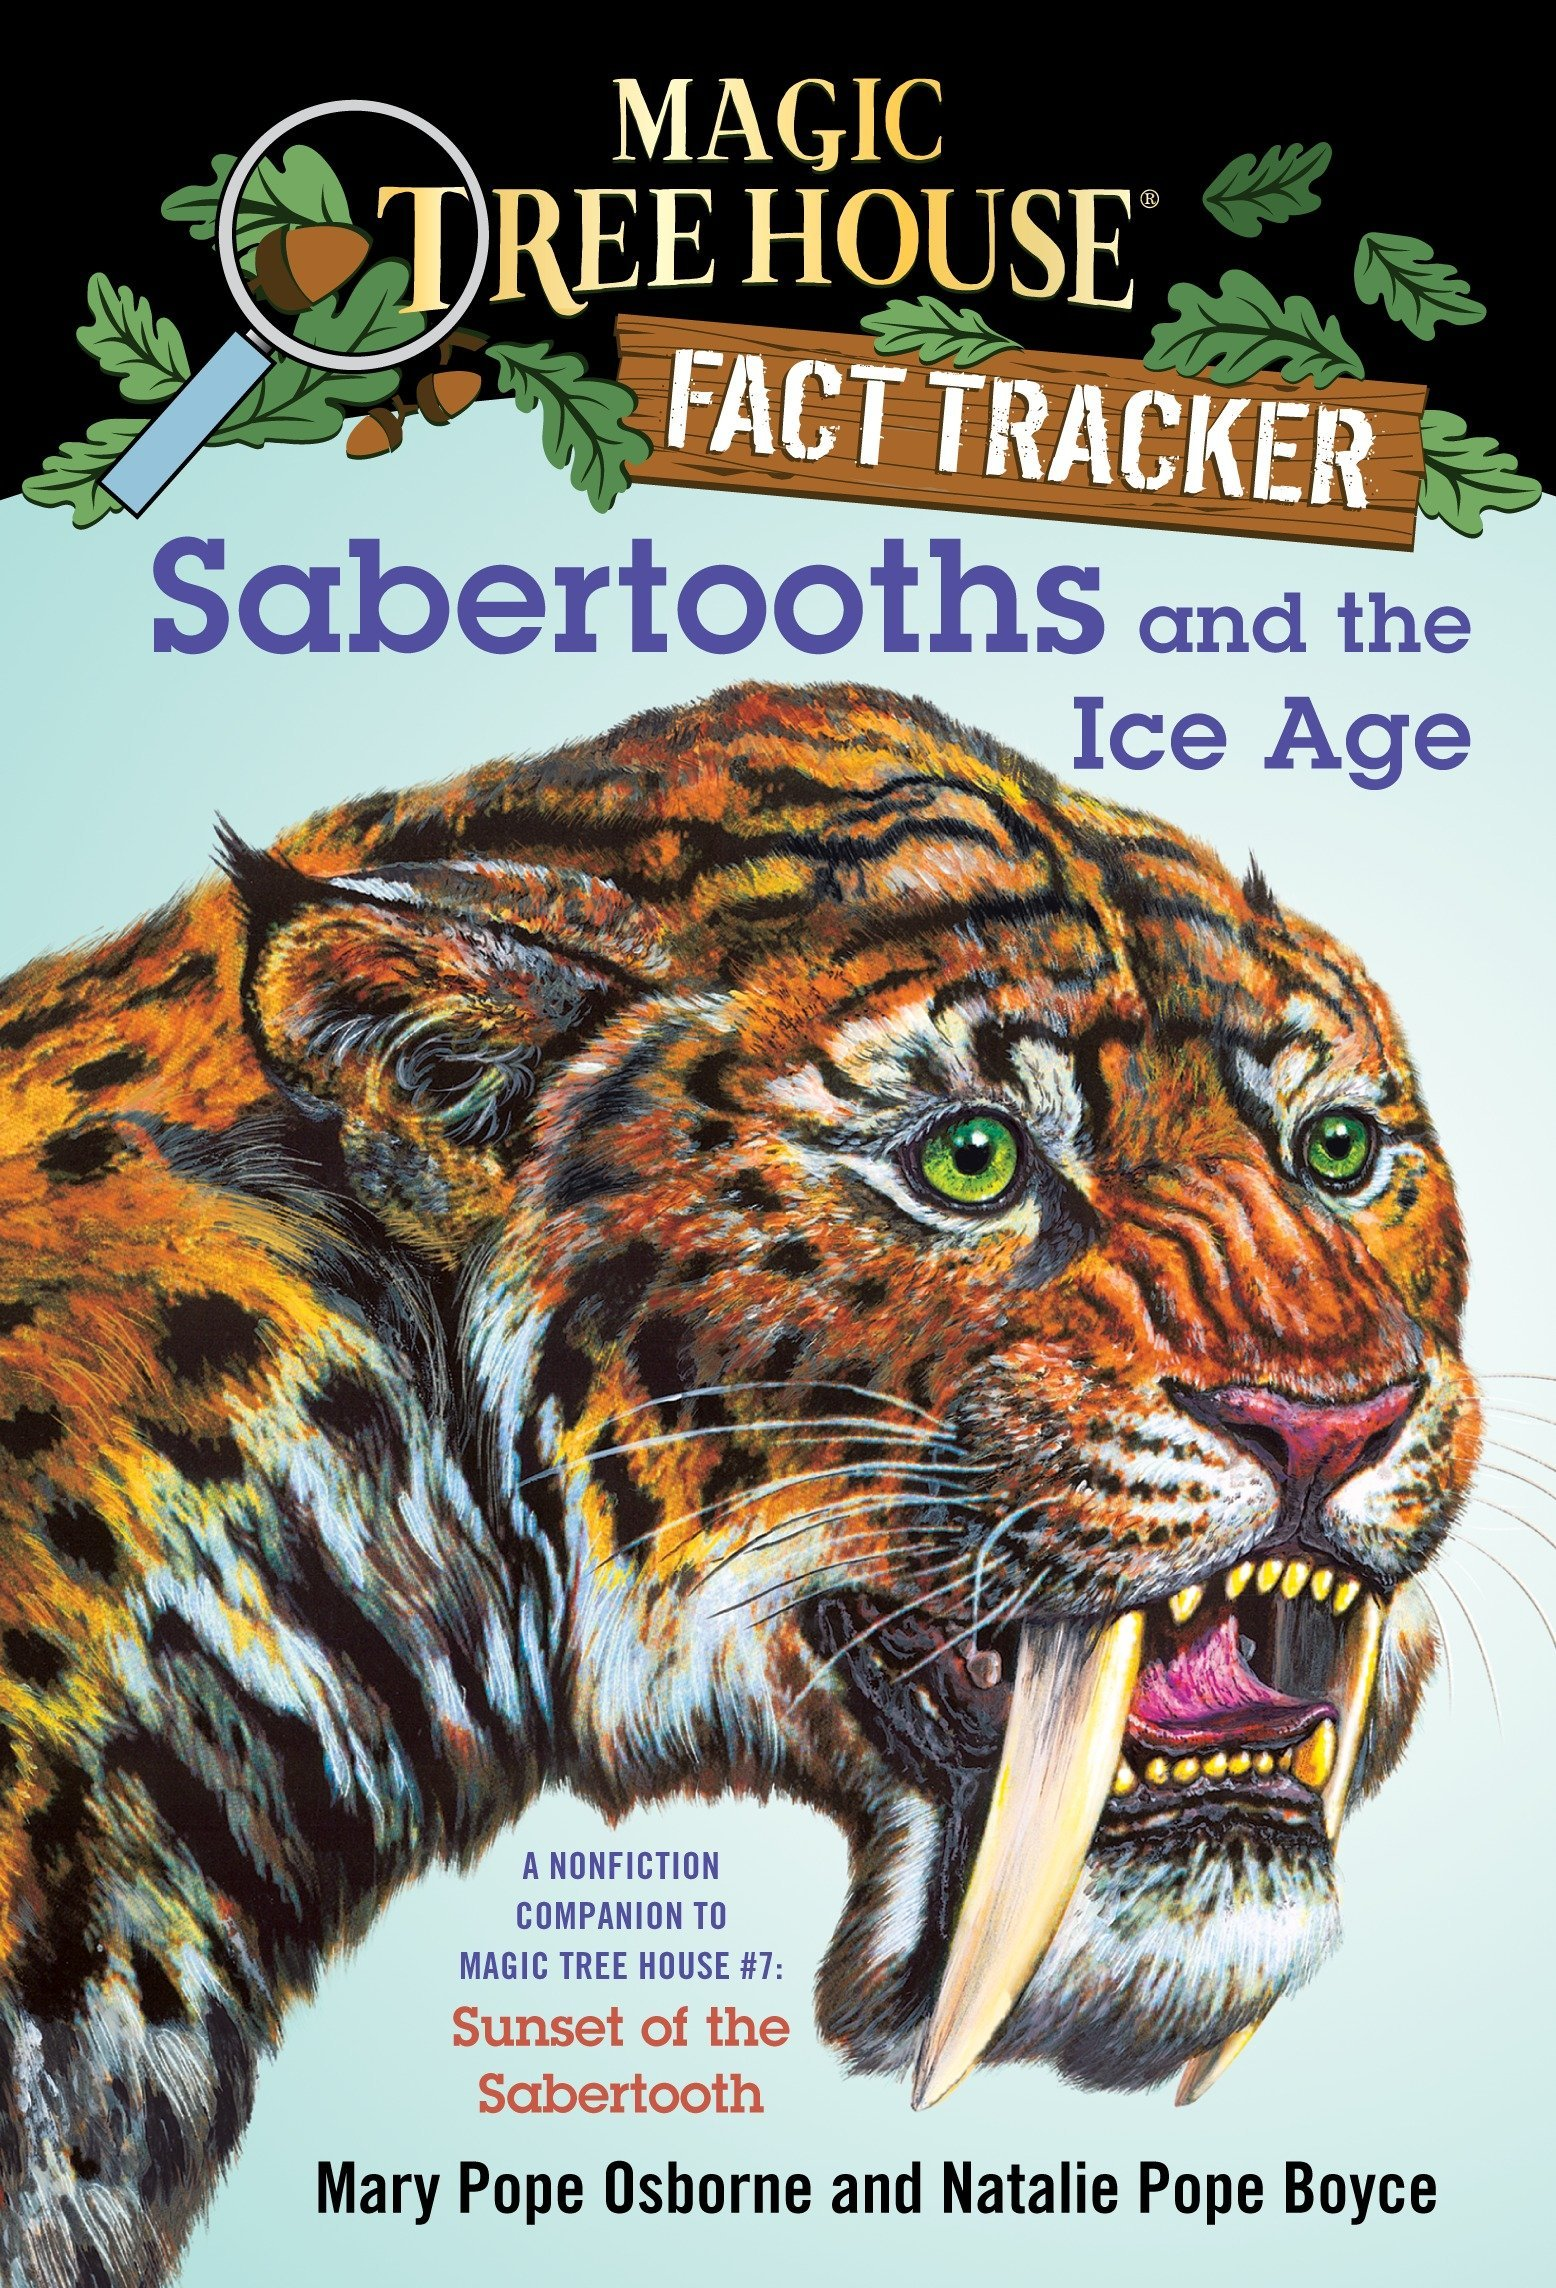 Sabertooths and the Ice Age: A Nonfiction Companion to Magic Tree House #7: Sunset of the Sabertooth Paperback – February 22, 2005 Mary Pope Osborne Natalie Pope Boyce Sal Murdocca 0375823808